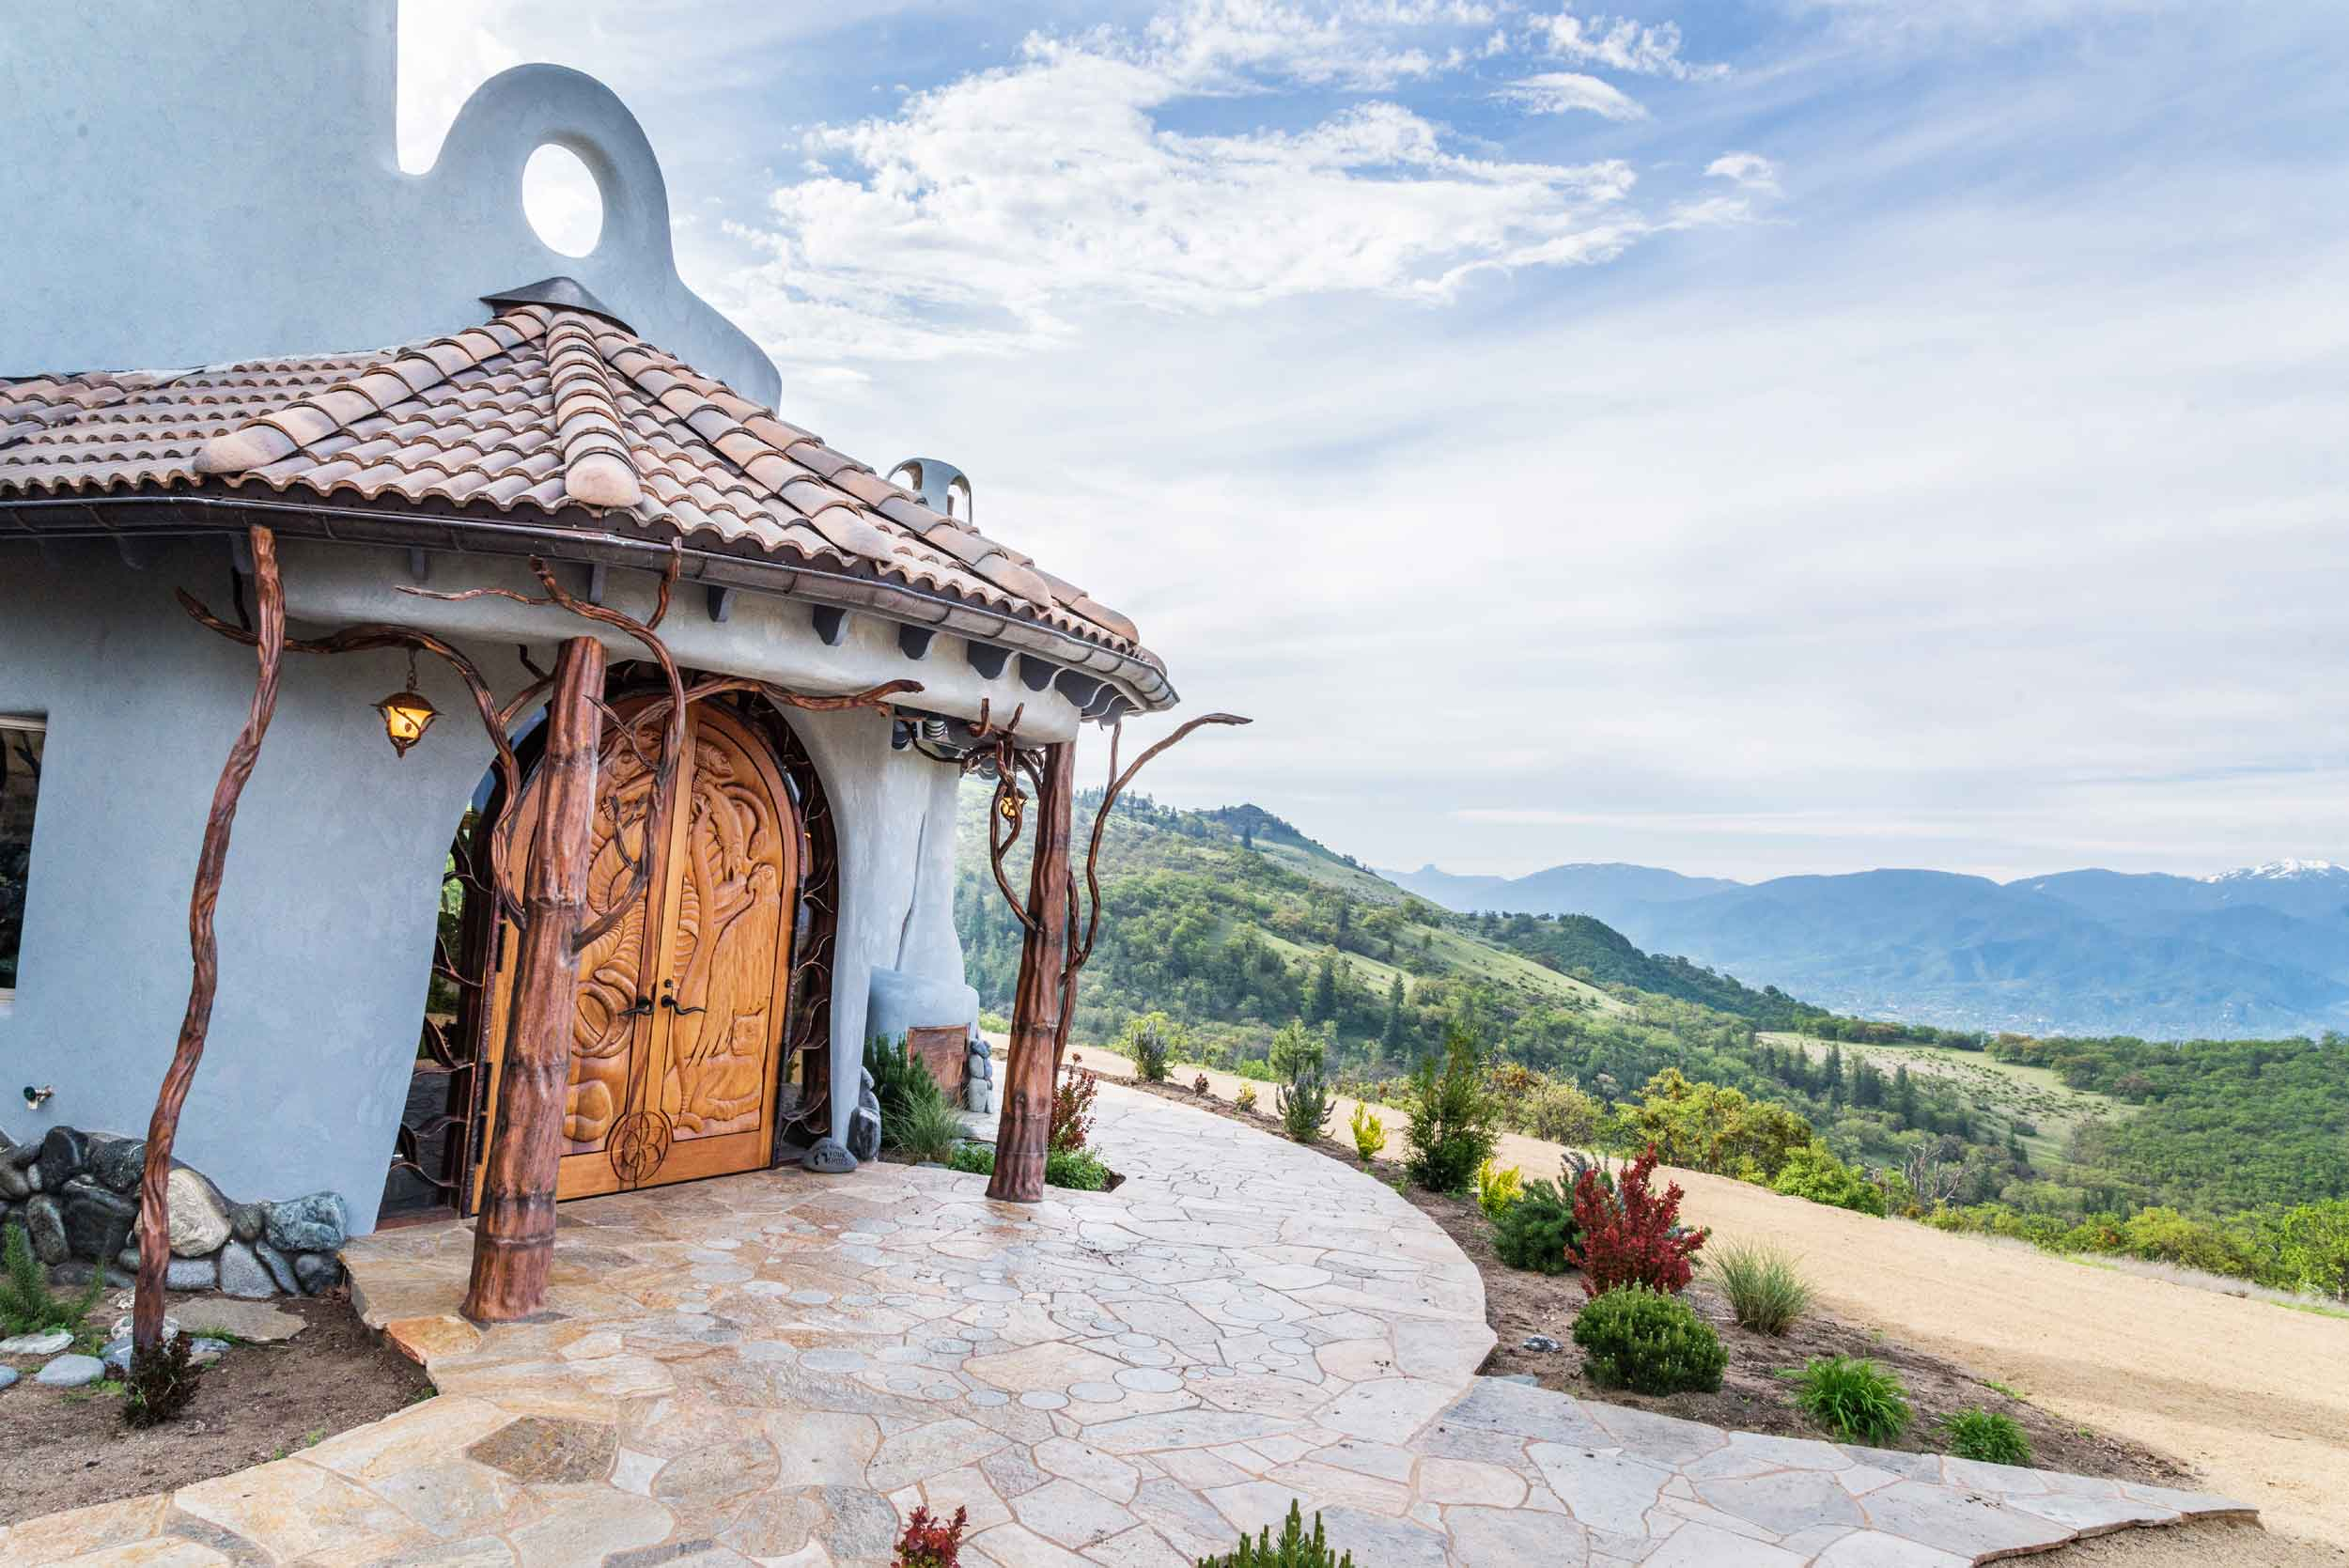 The entrance to this unique 700-acre estate is marked by arched front doors framed by beautiful copper tree sculptures. Their branches extend out to intertwine and support the covered entryway. Other doors throughout the home pay homage to the native cultures, plants, and animals indigenous to the region.